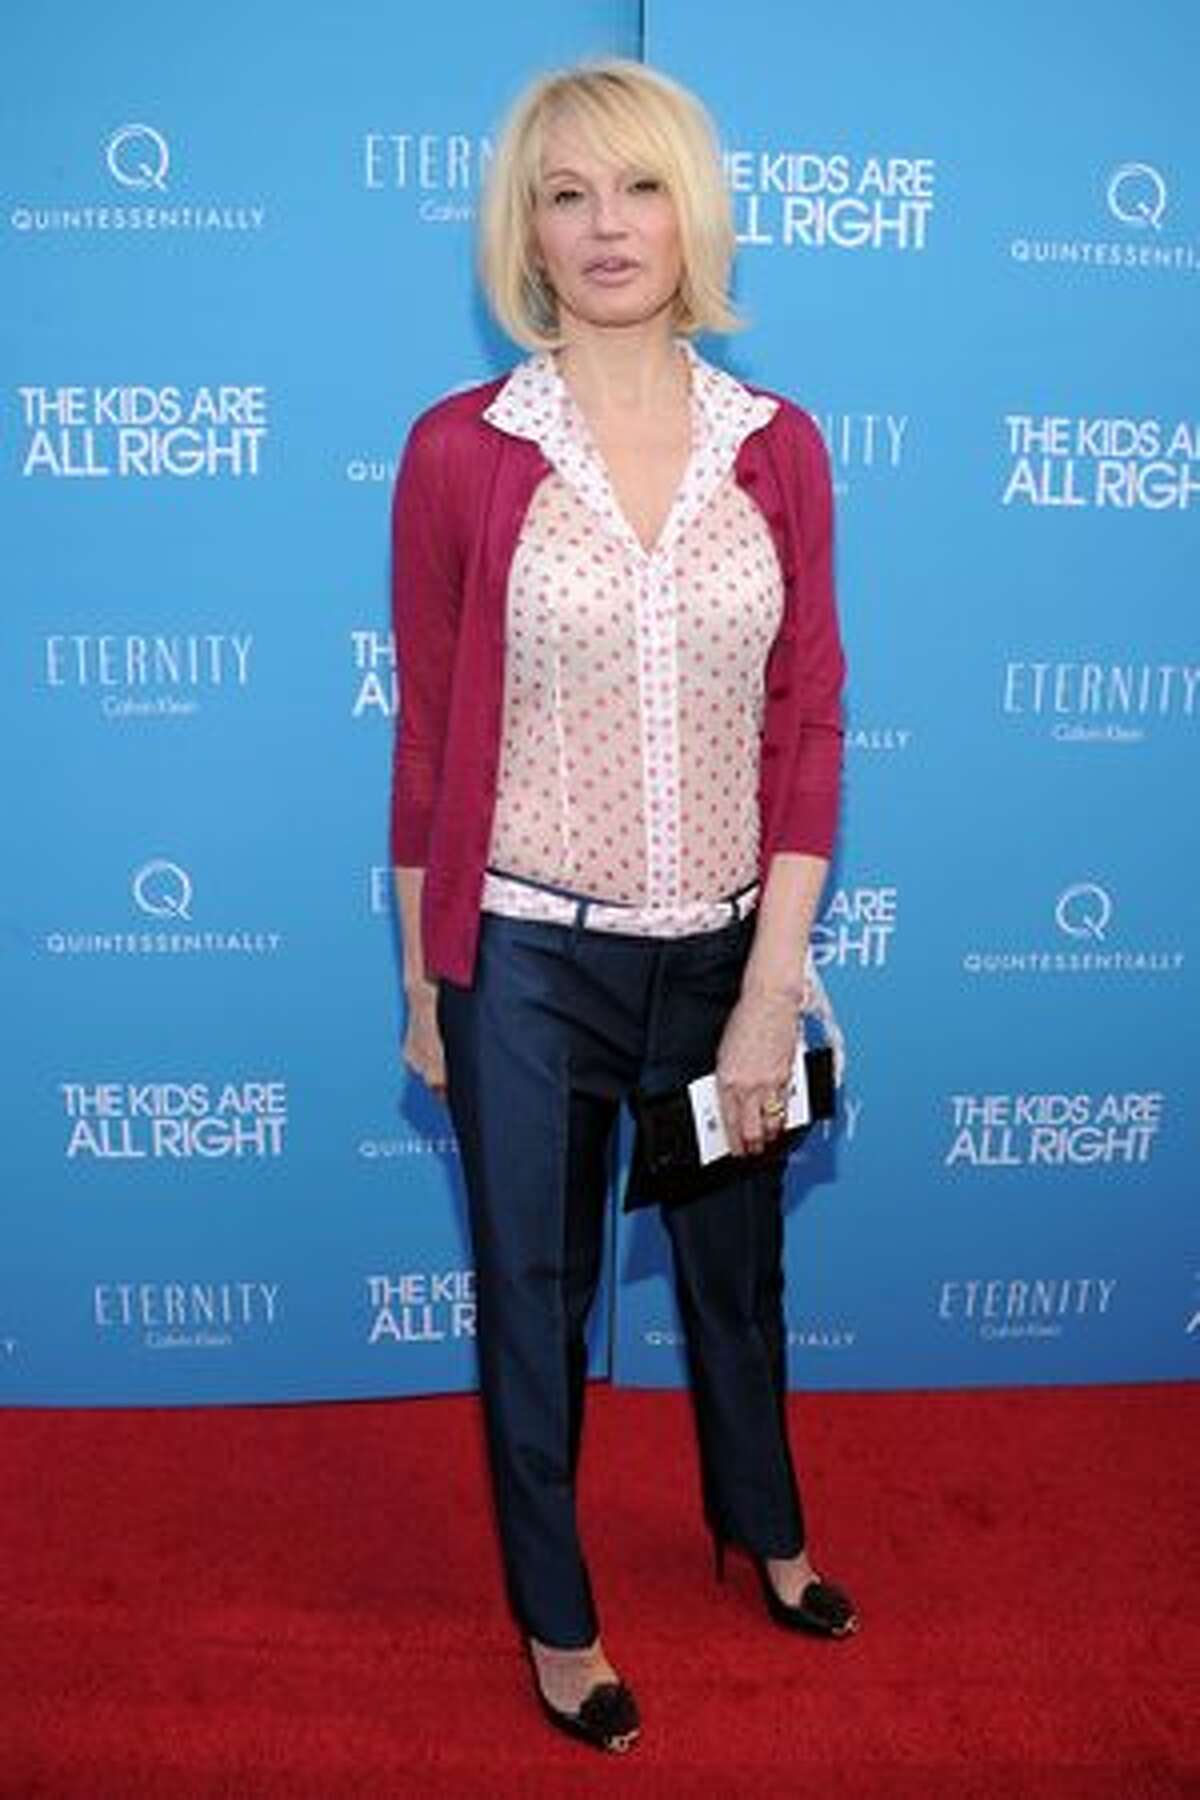 Actress Ellen Barkin attends the premiere of the